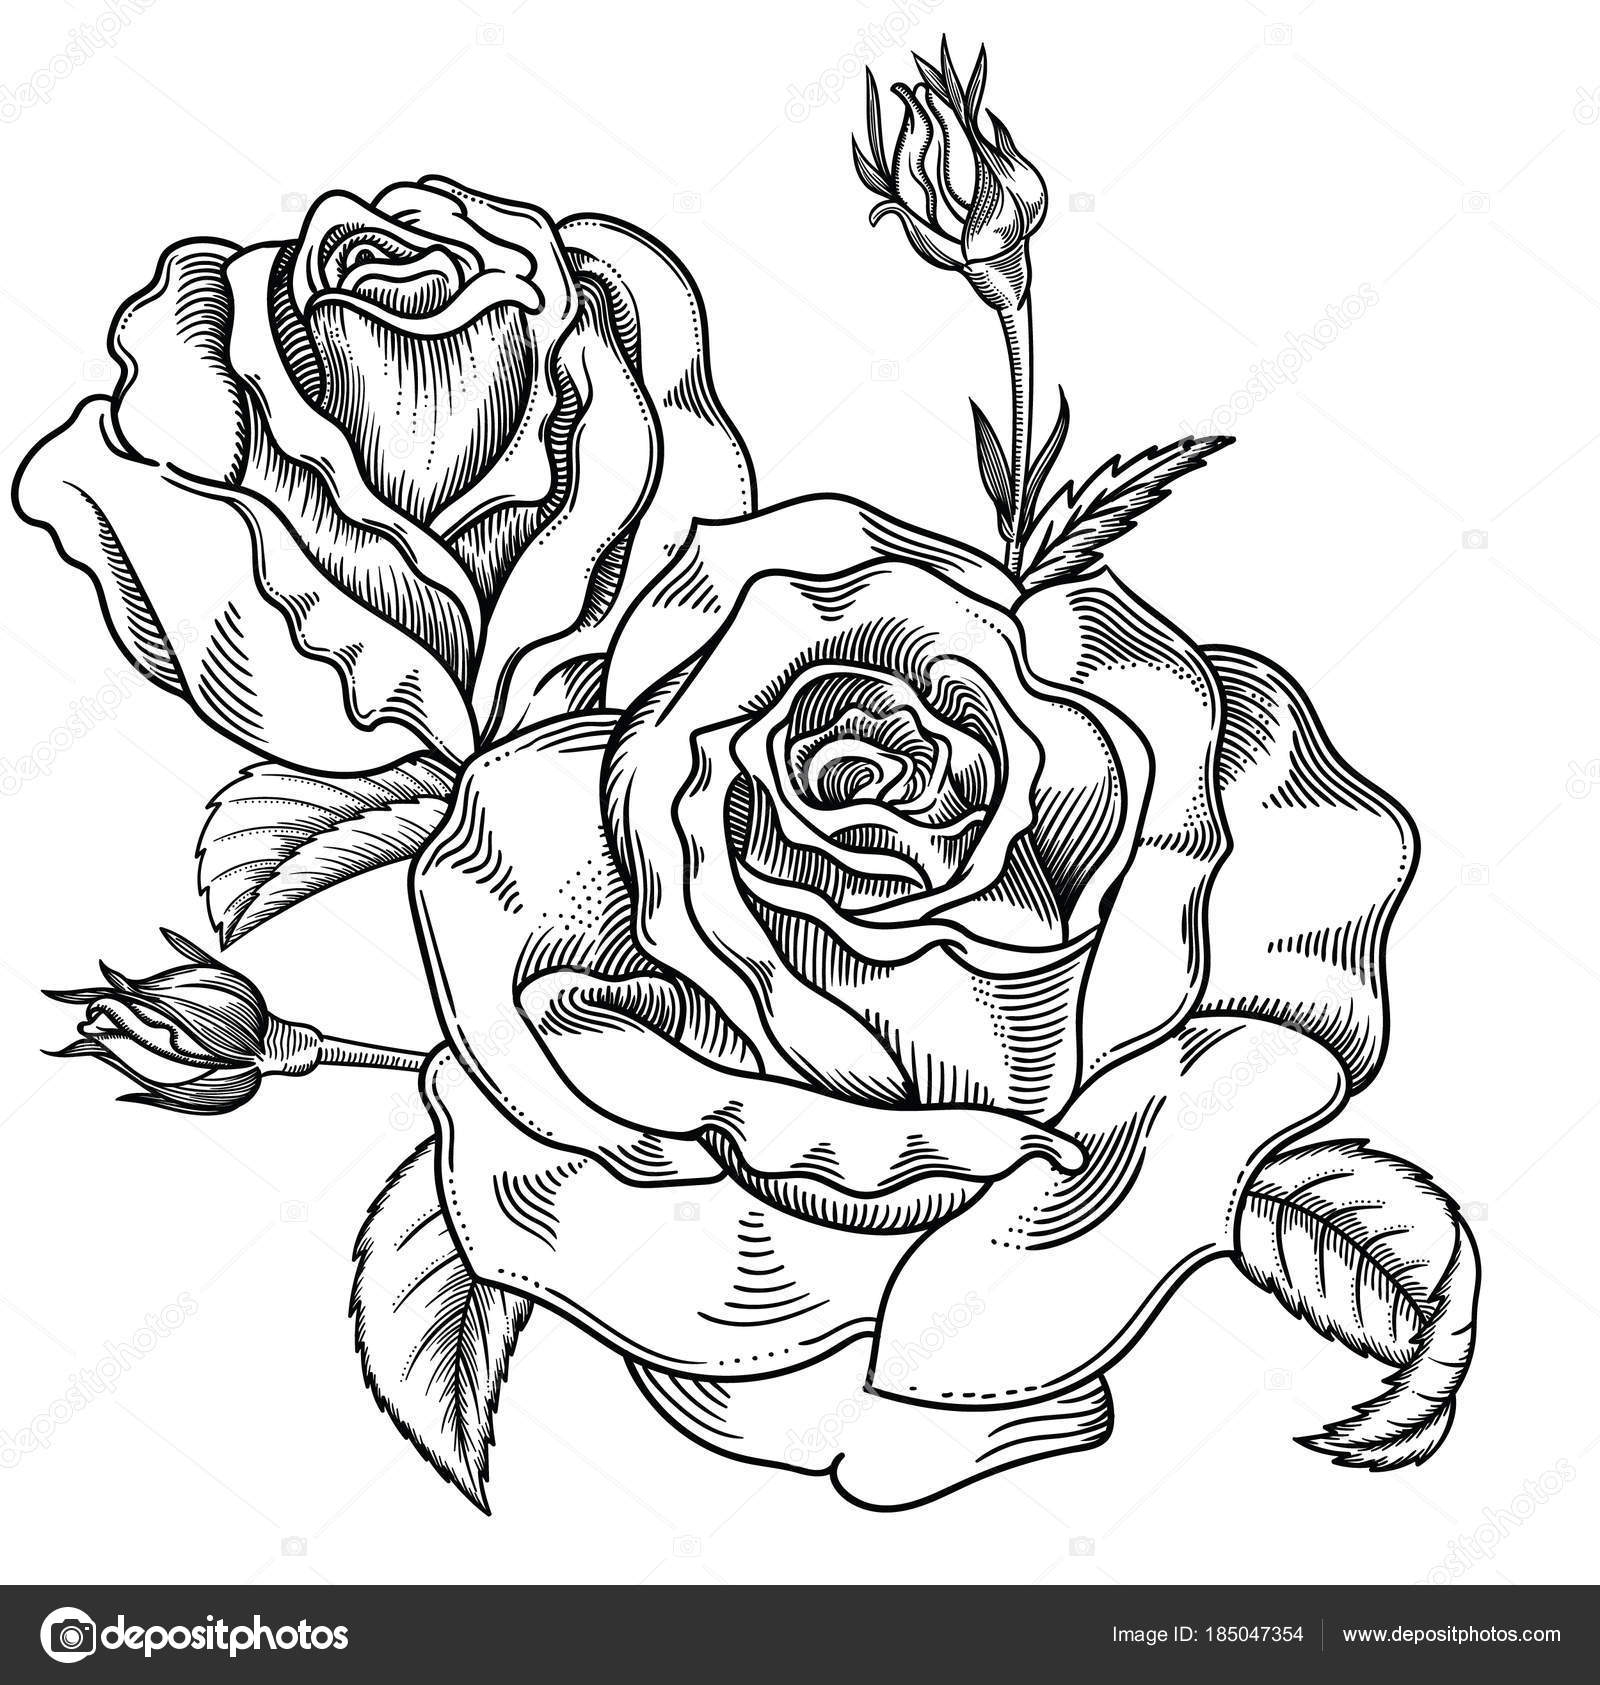 Blooming Sketch Black And White Roses Flowers Detailed Hand Drawn